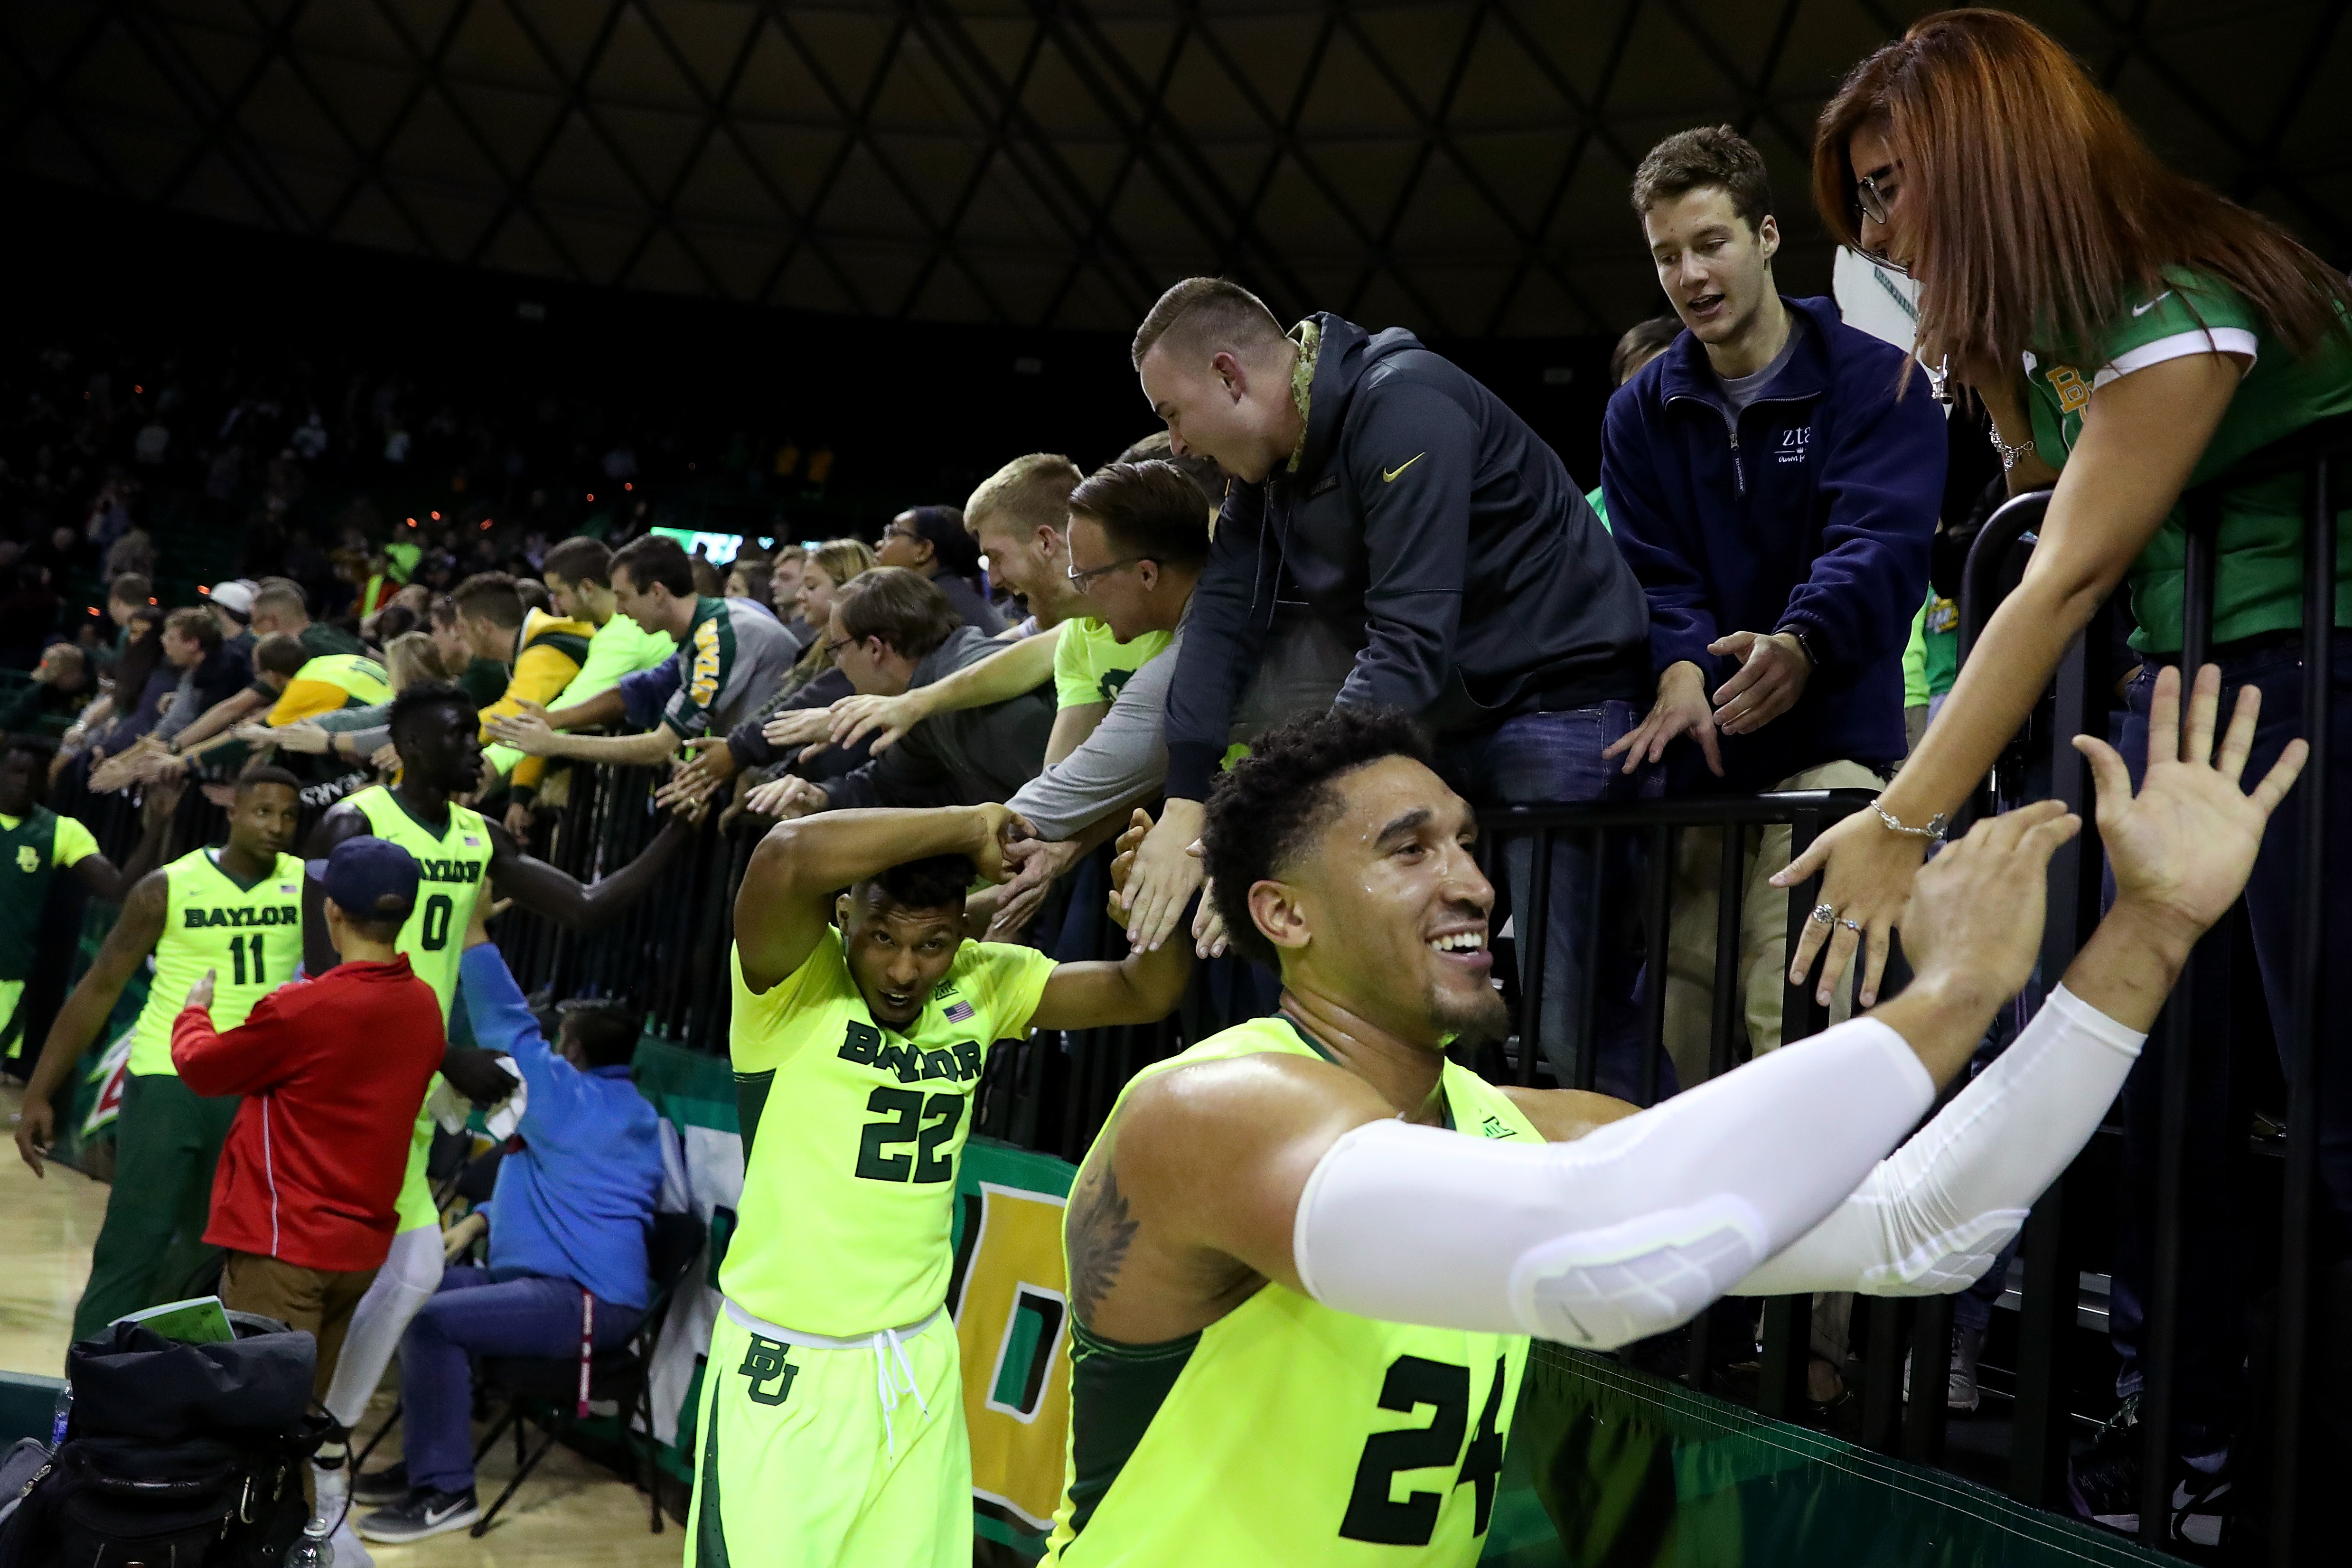 WACO, TX - JANUARY 04: Ishmail Wainright #24 of the Baylor Bears and King McClure #22 of the Baylor Bears celebrate with fans after beating the Iowa State Cyclones 65-63 at Ferrell Center on January 4, 2017 in Waco, Texas. (Photo by Tom Pennington/Getty Images)